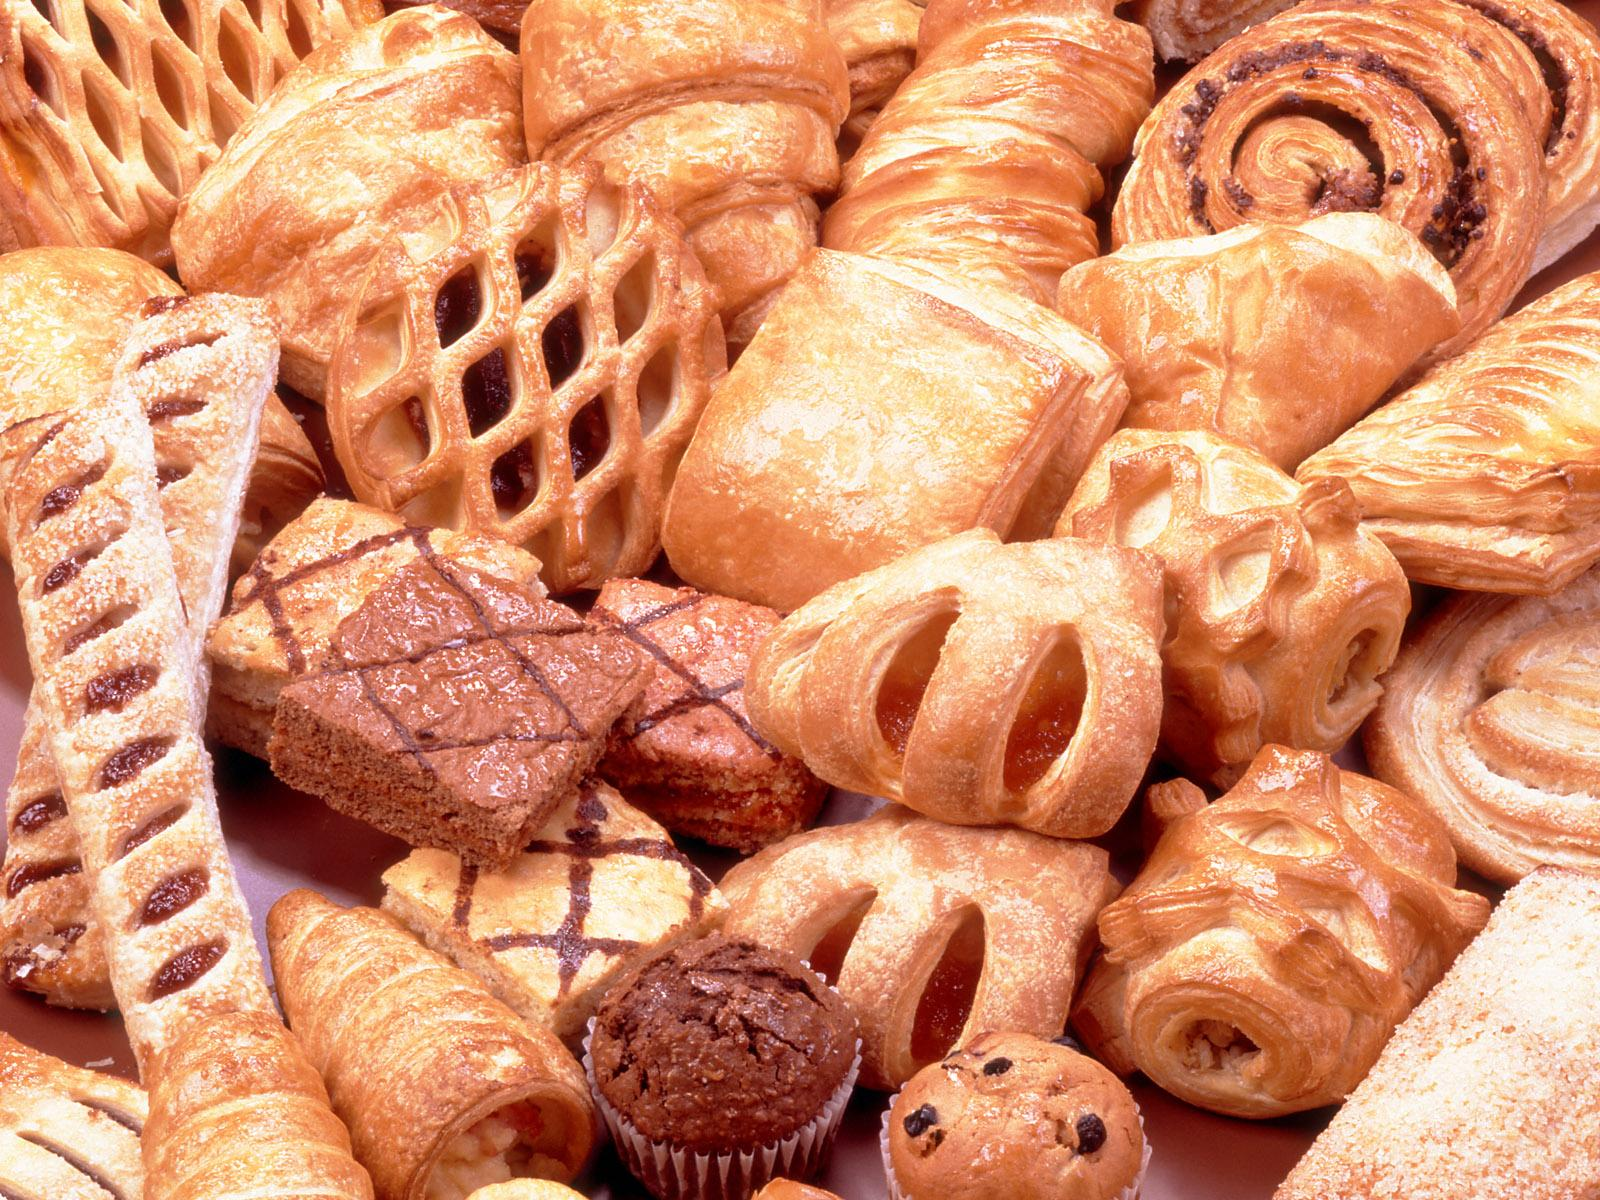 Tasty sweet pastries